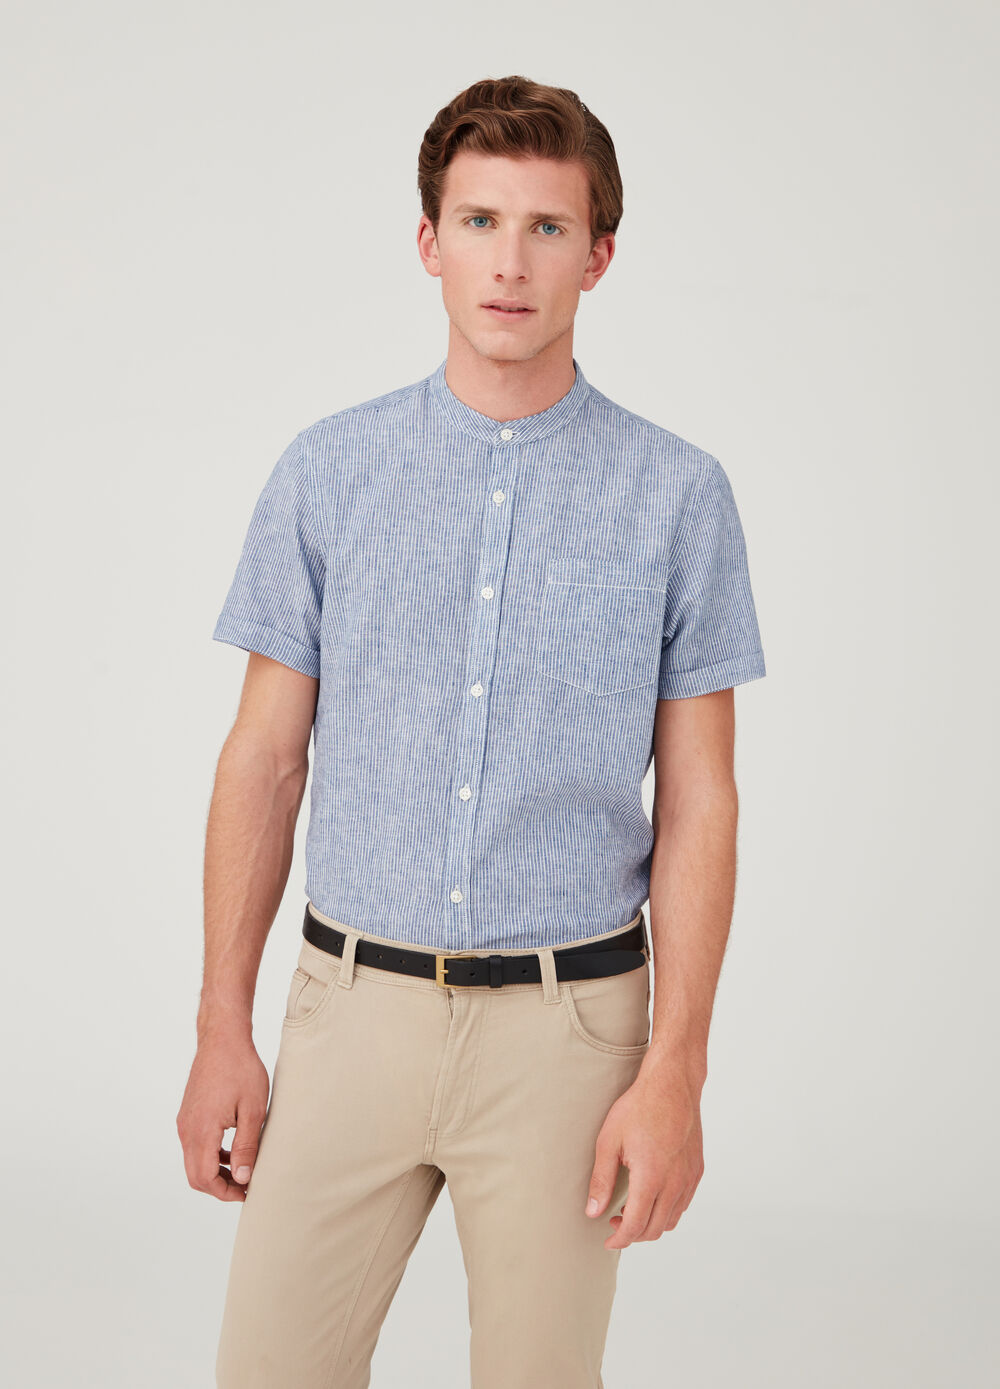 Short-sleeved shirt with stripes and pocket